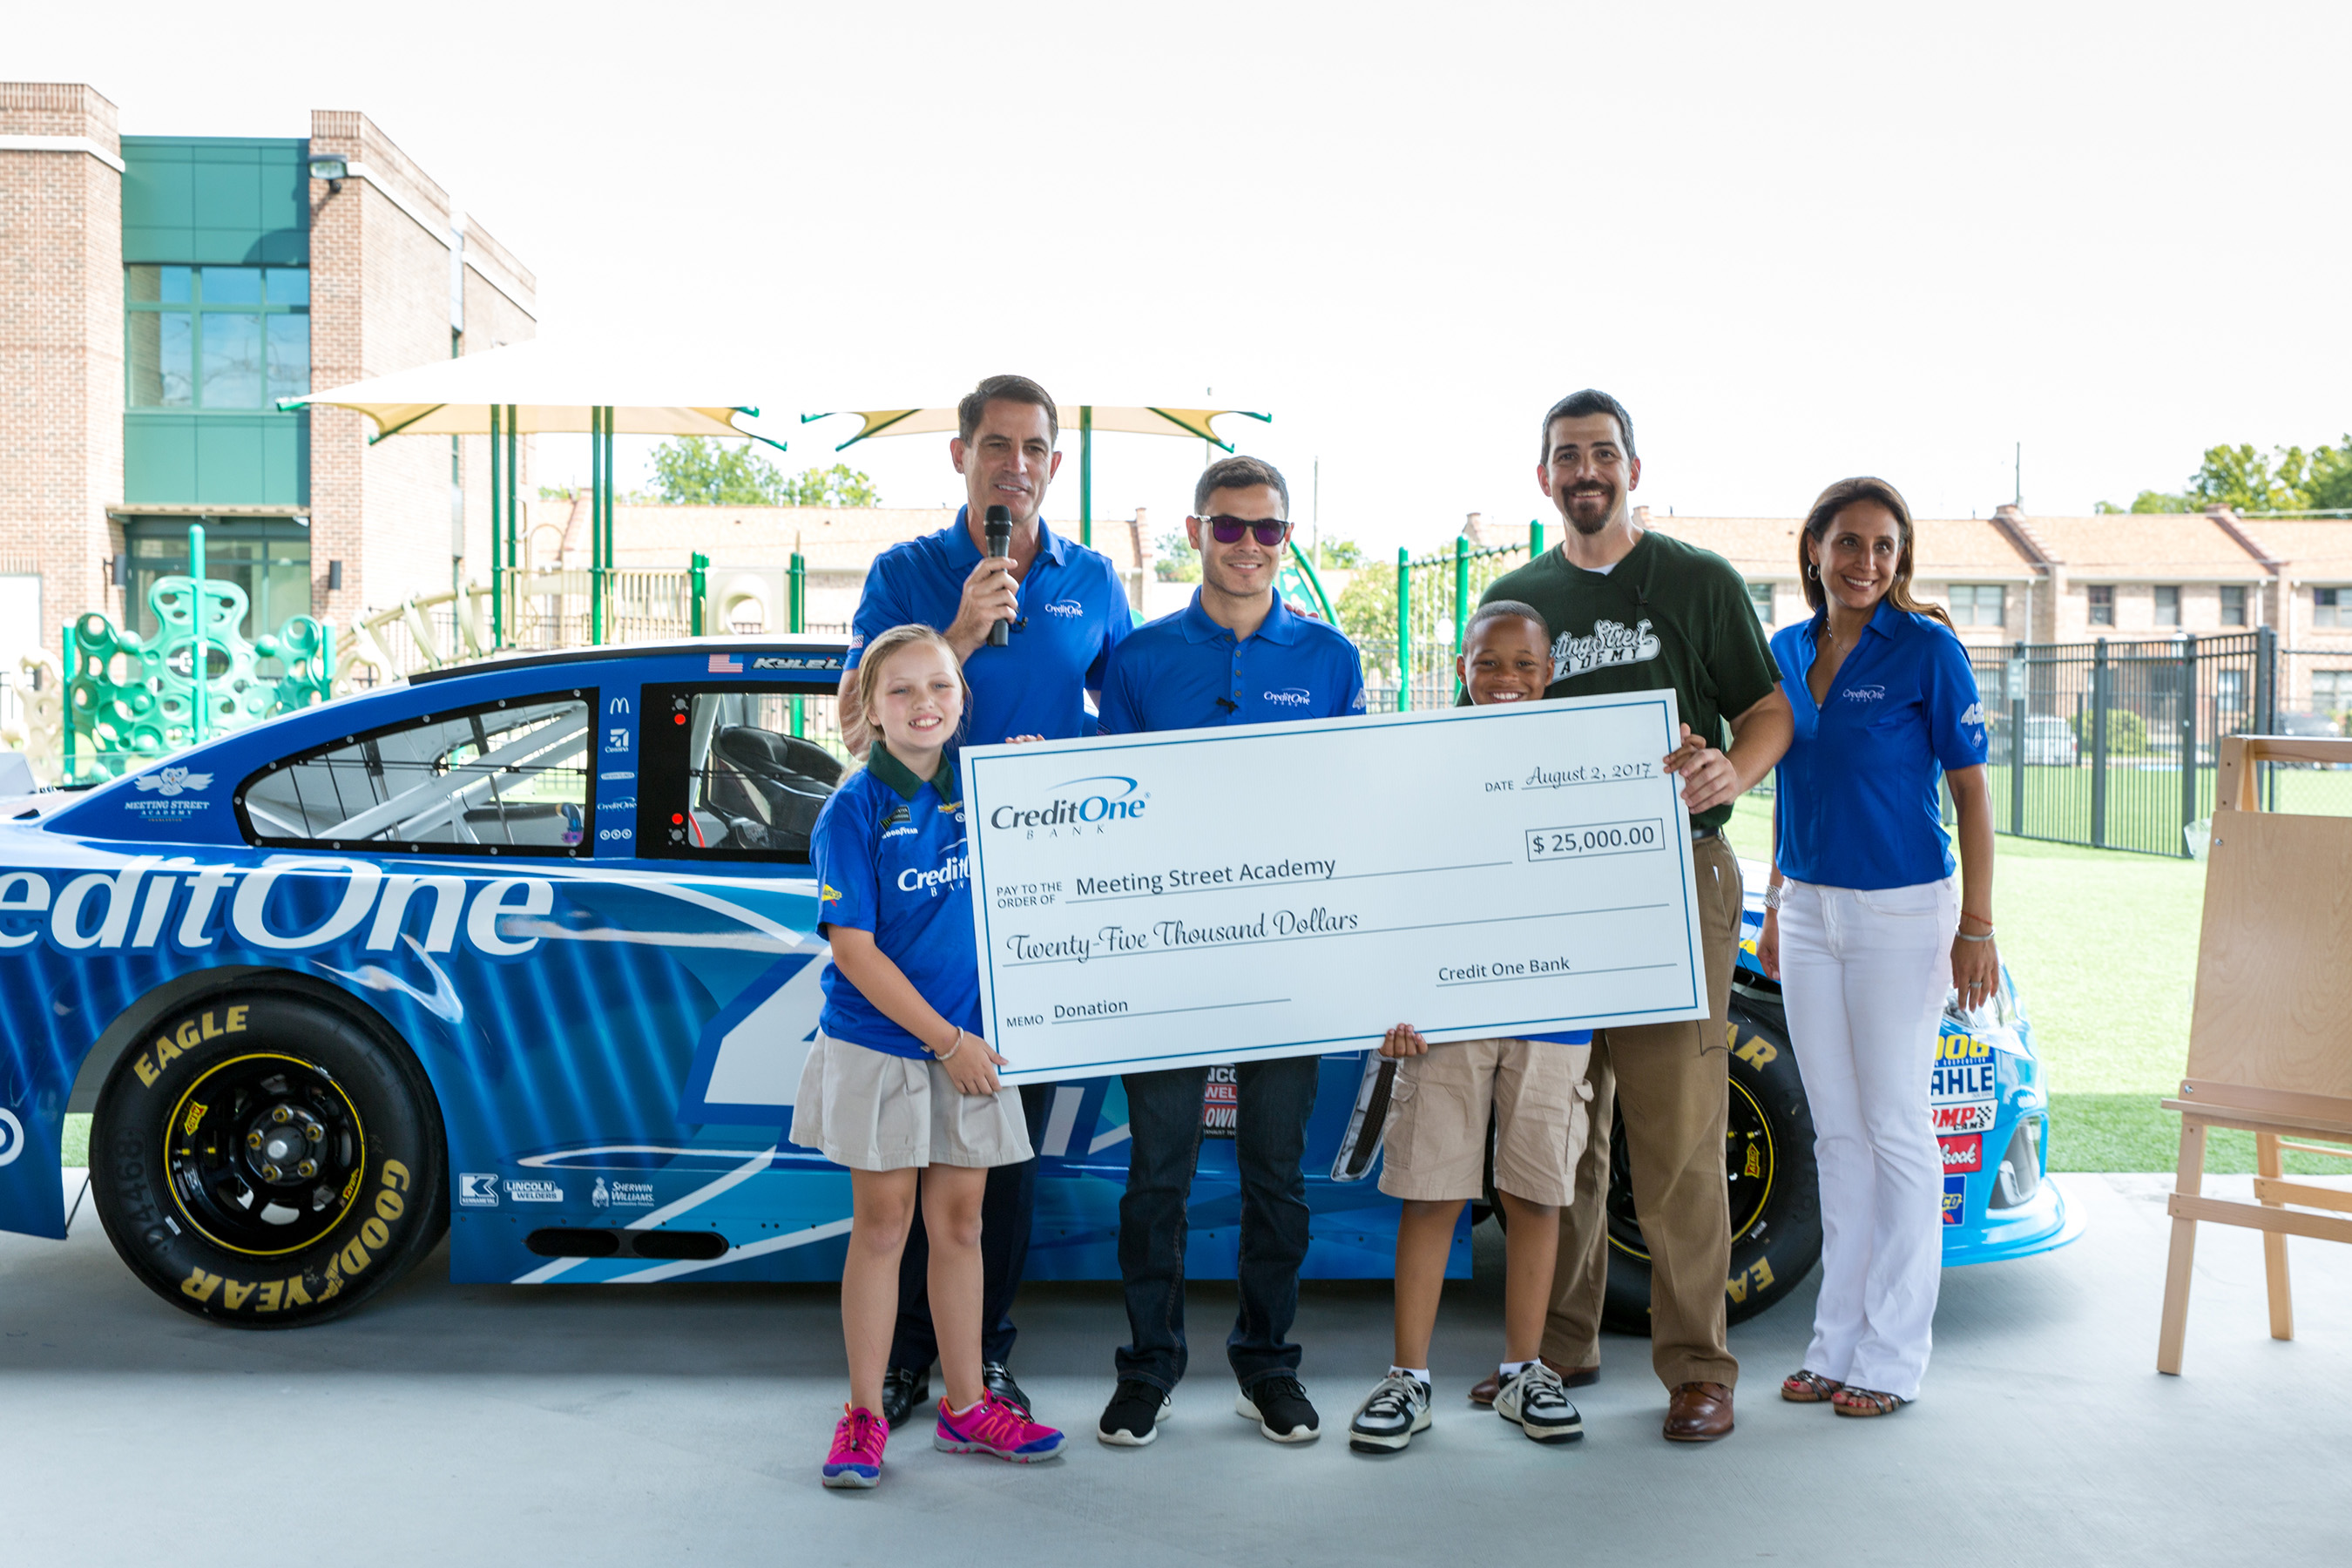 Credit One Bank president Robert DeJong & SVP of marketing Mamta Kapoor joined by Kyle Larson, present $25,000 to Meeting Street Academy students and principal Dirk Bedford. (Minette Hand Photography)